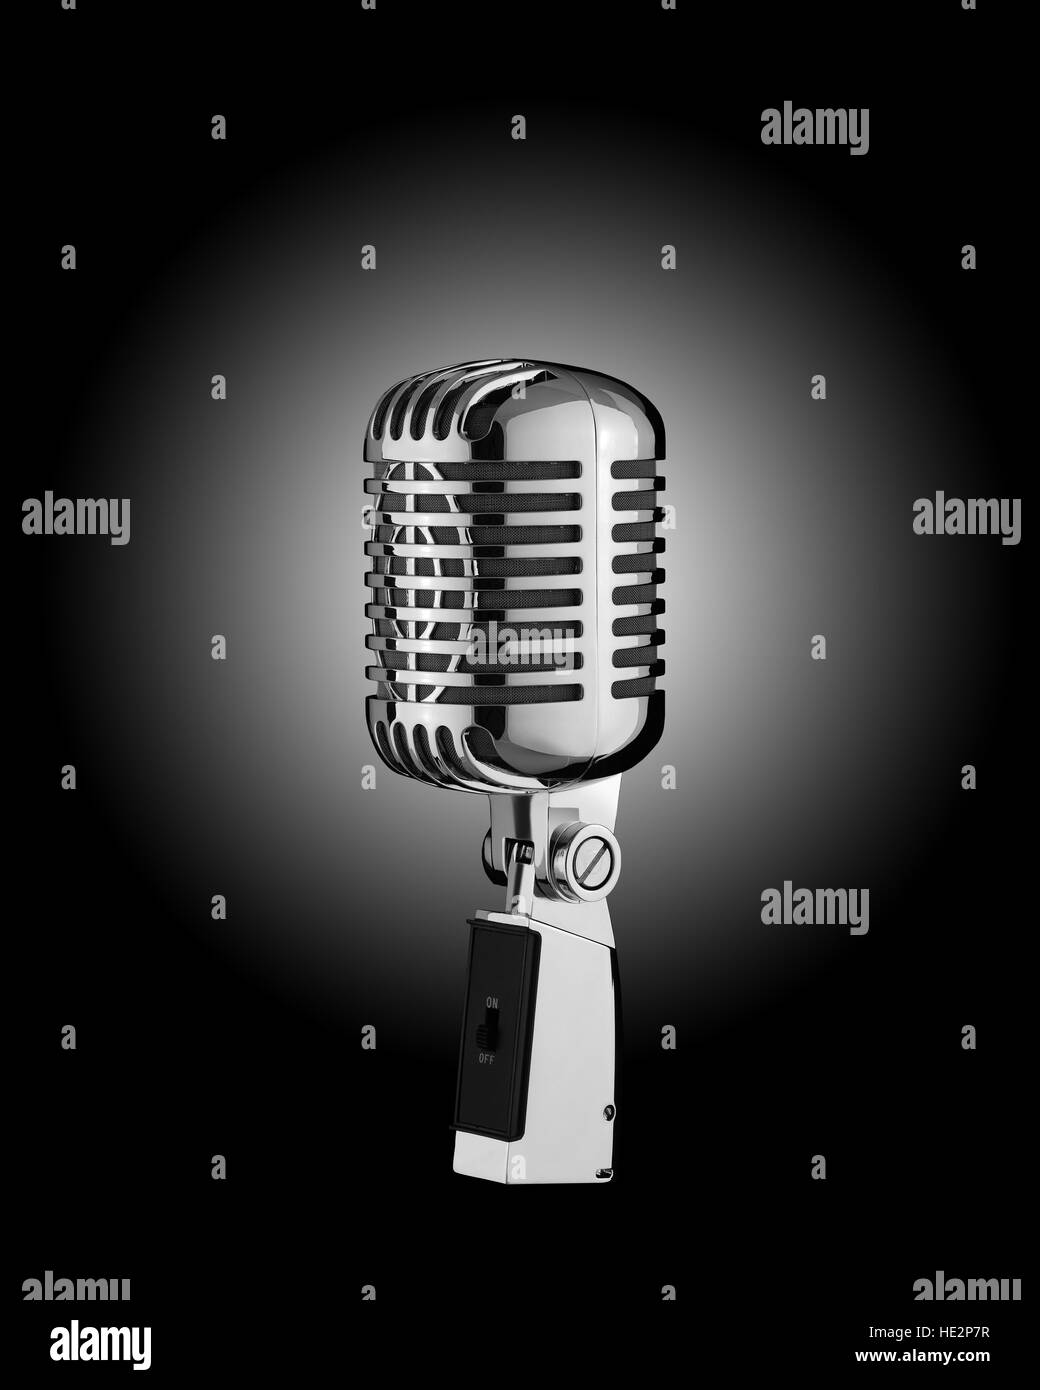 Retro Microphone isolate on background - Stock Image